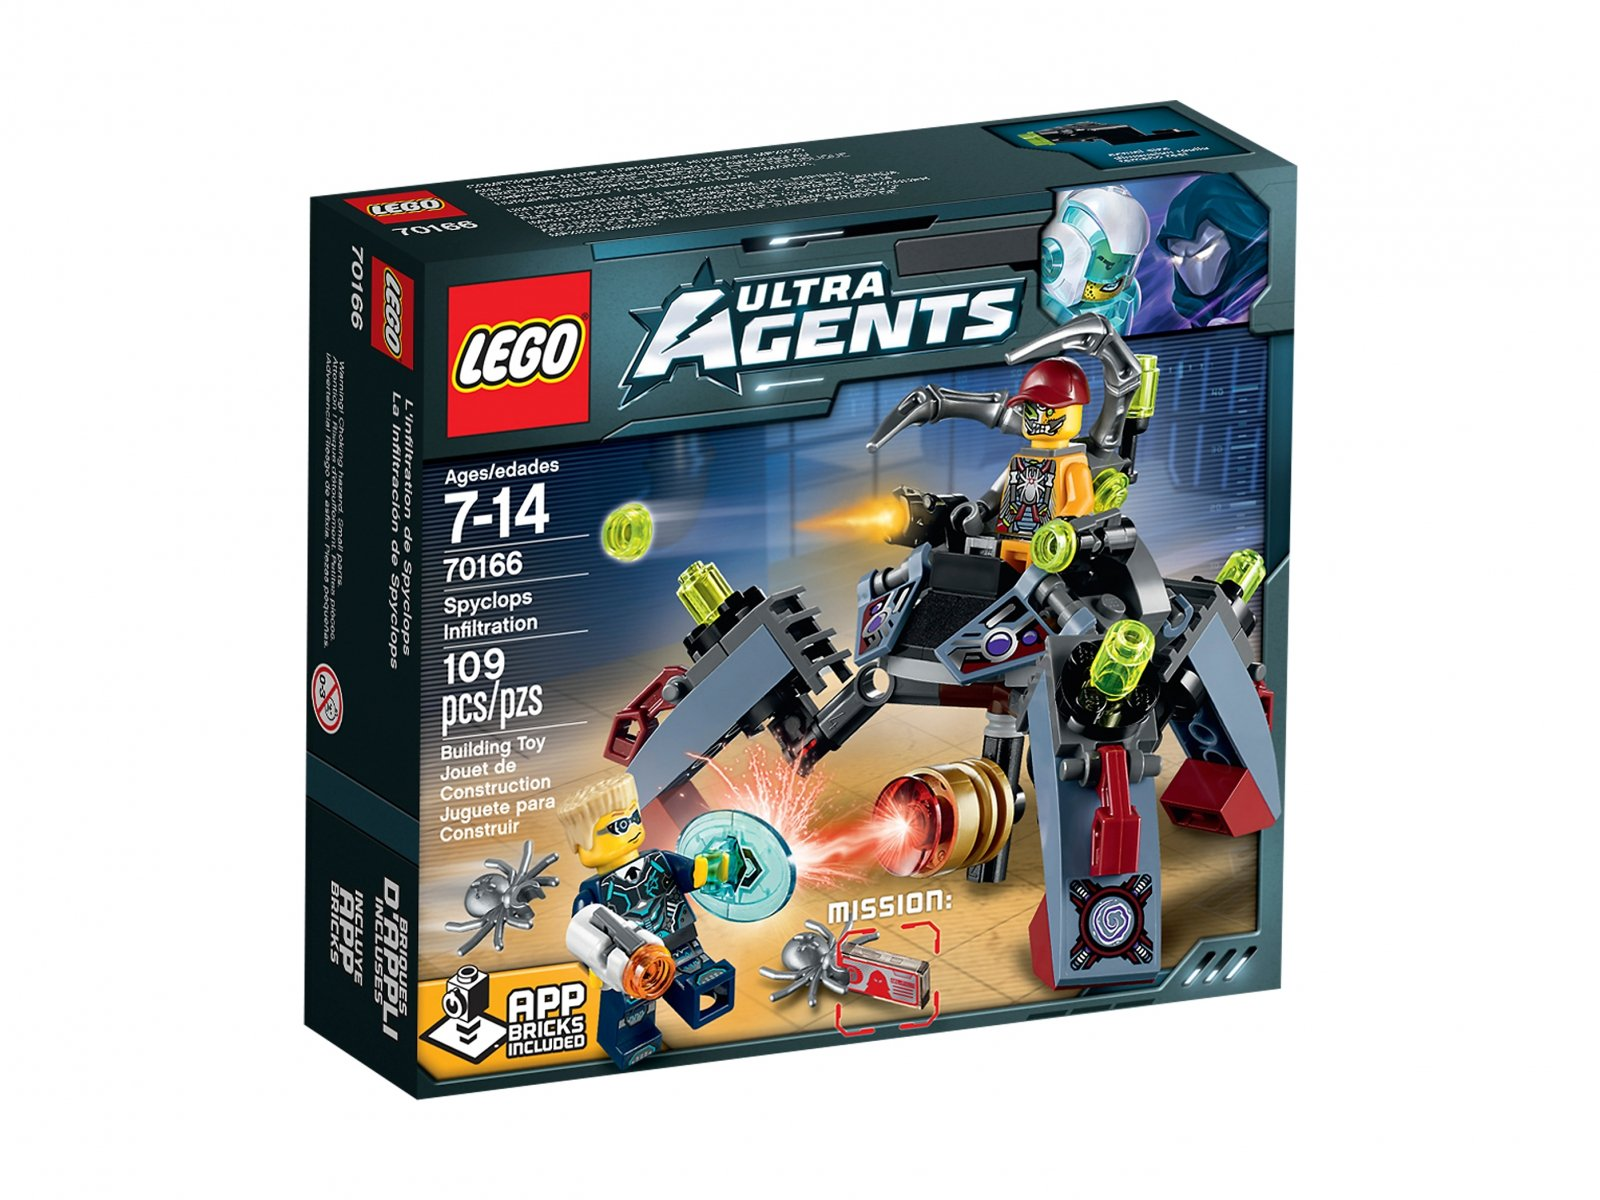 LEGO 70166 Ultra Agents Spyclops Infiltration